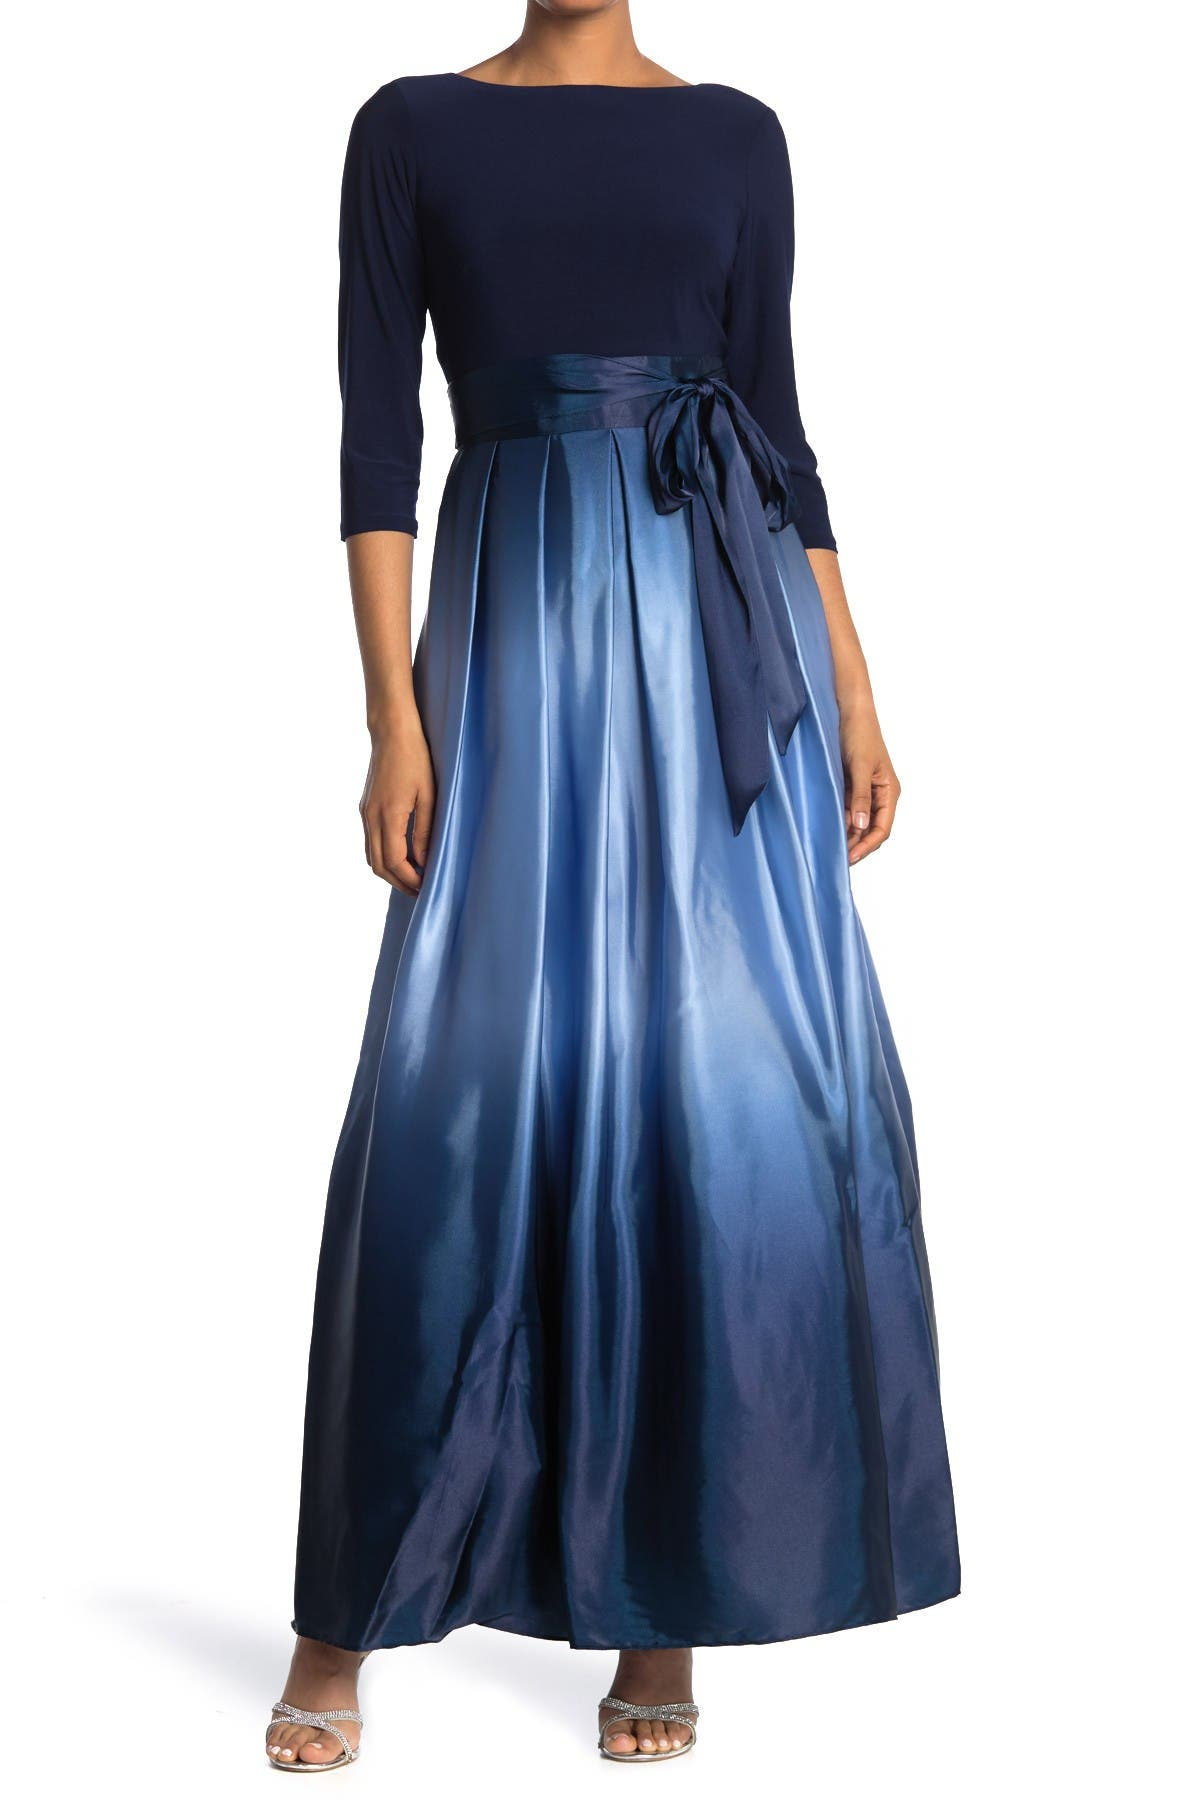 Image of SLNY Tie Waist Ombre Skirt Gown